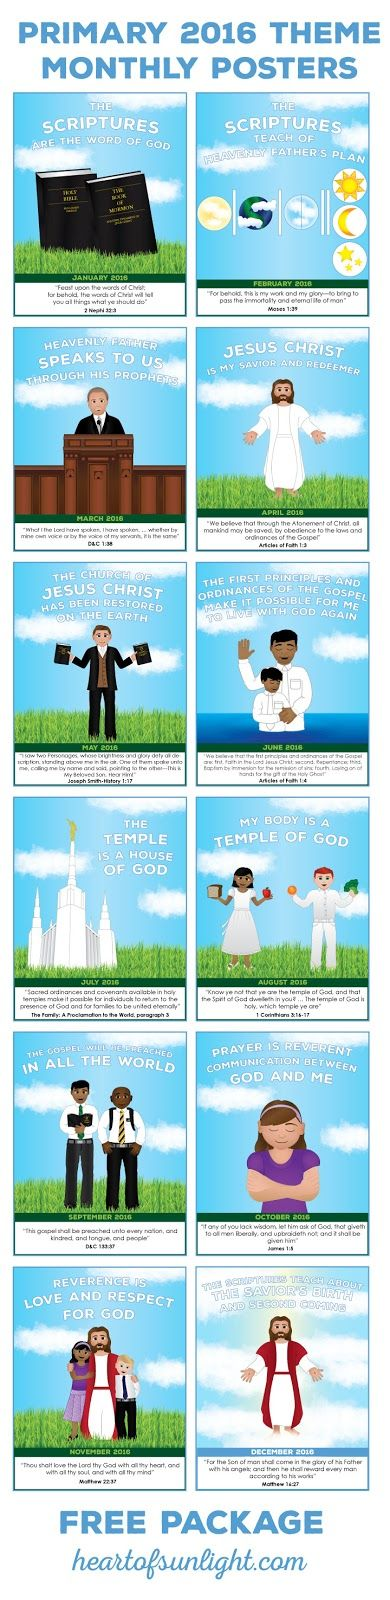 FREE 2016 Primary Theme Poster and Binder Package | @heartofsunlight | #heartofsunlight